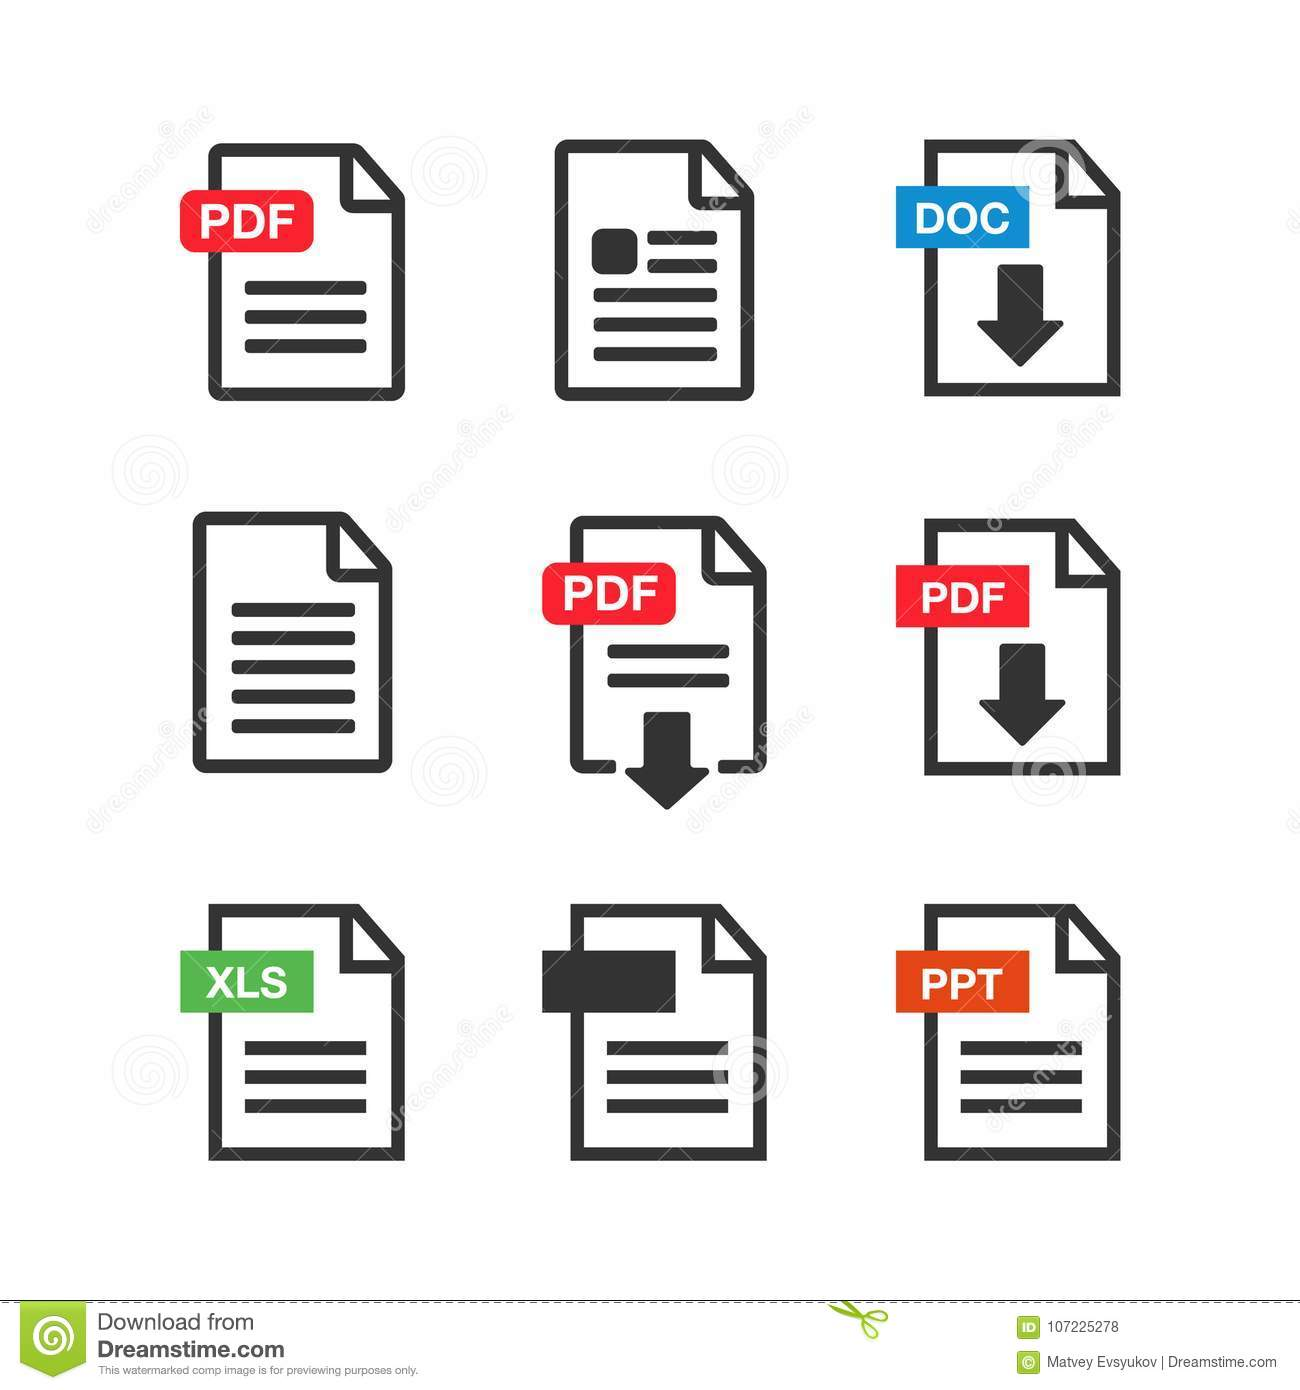 Pdf File Download Icon Document Text Symbol Web Format: PDF File Download Icon. Document Text, Symbol Web